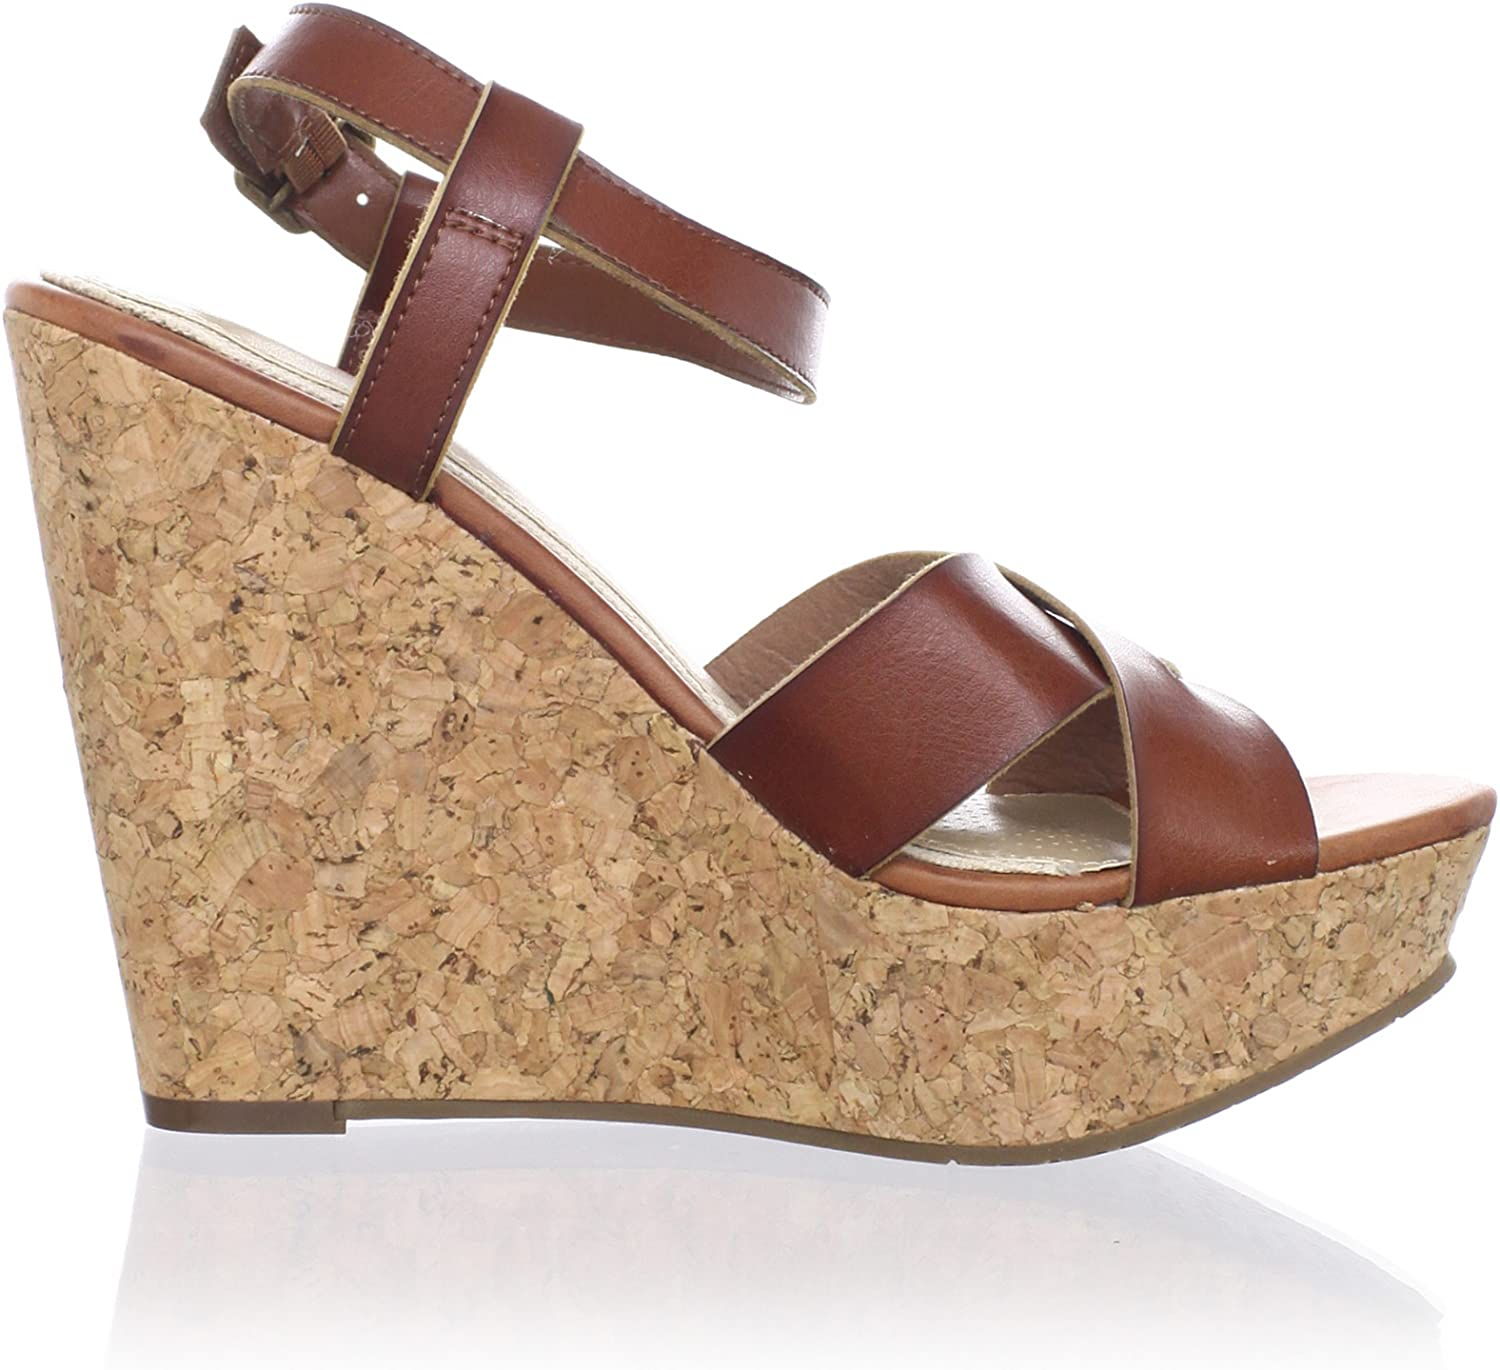 Ciao Bella Womens Tatiana Ankle-Strap Sandal